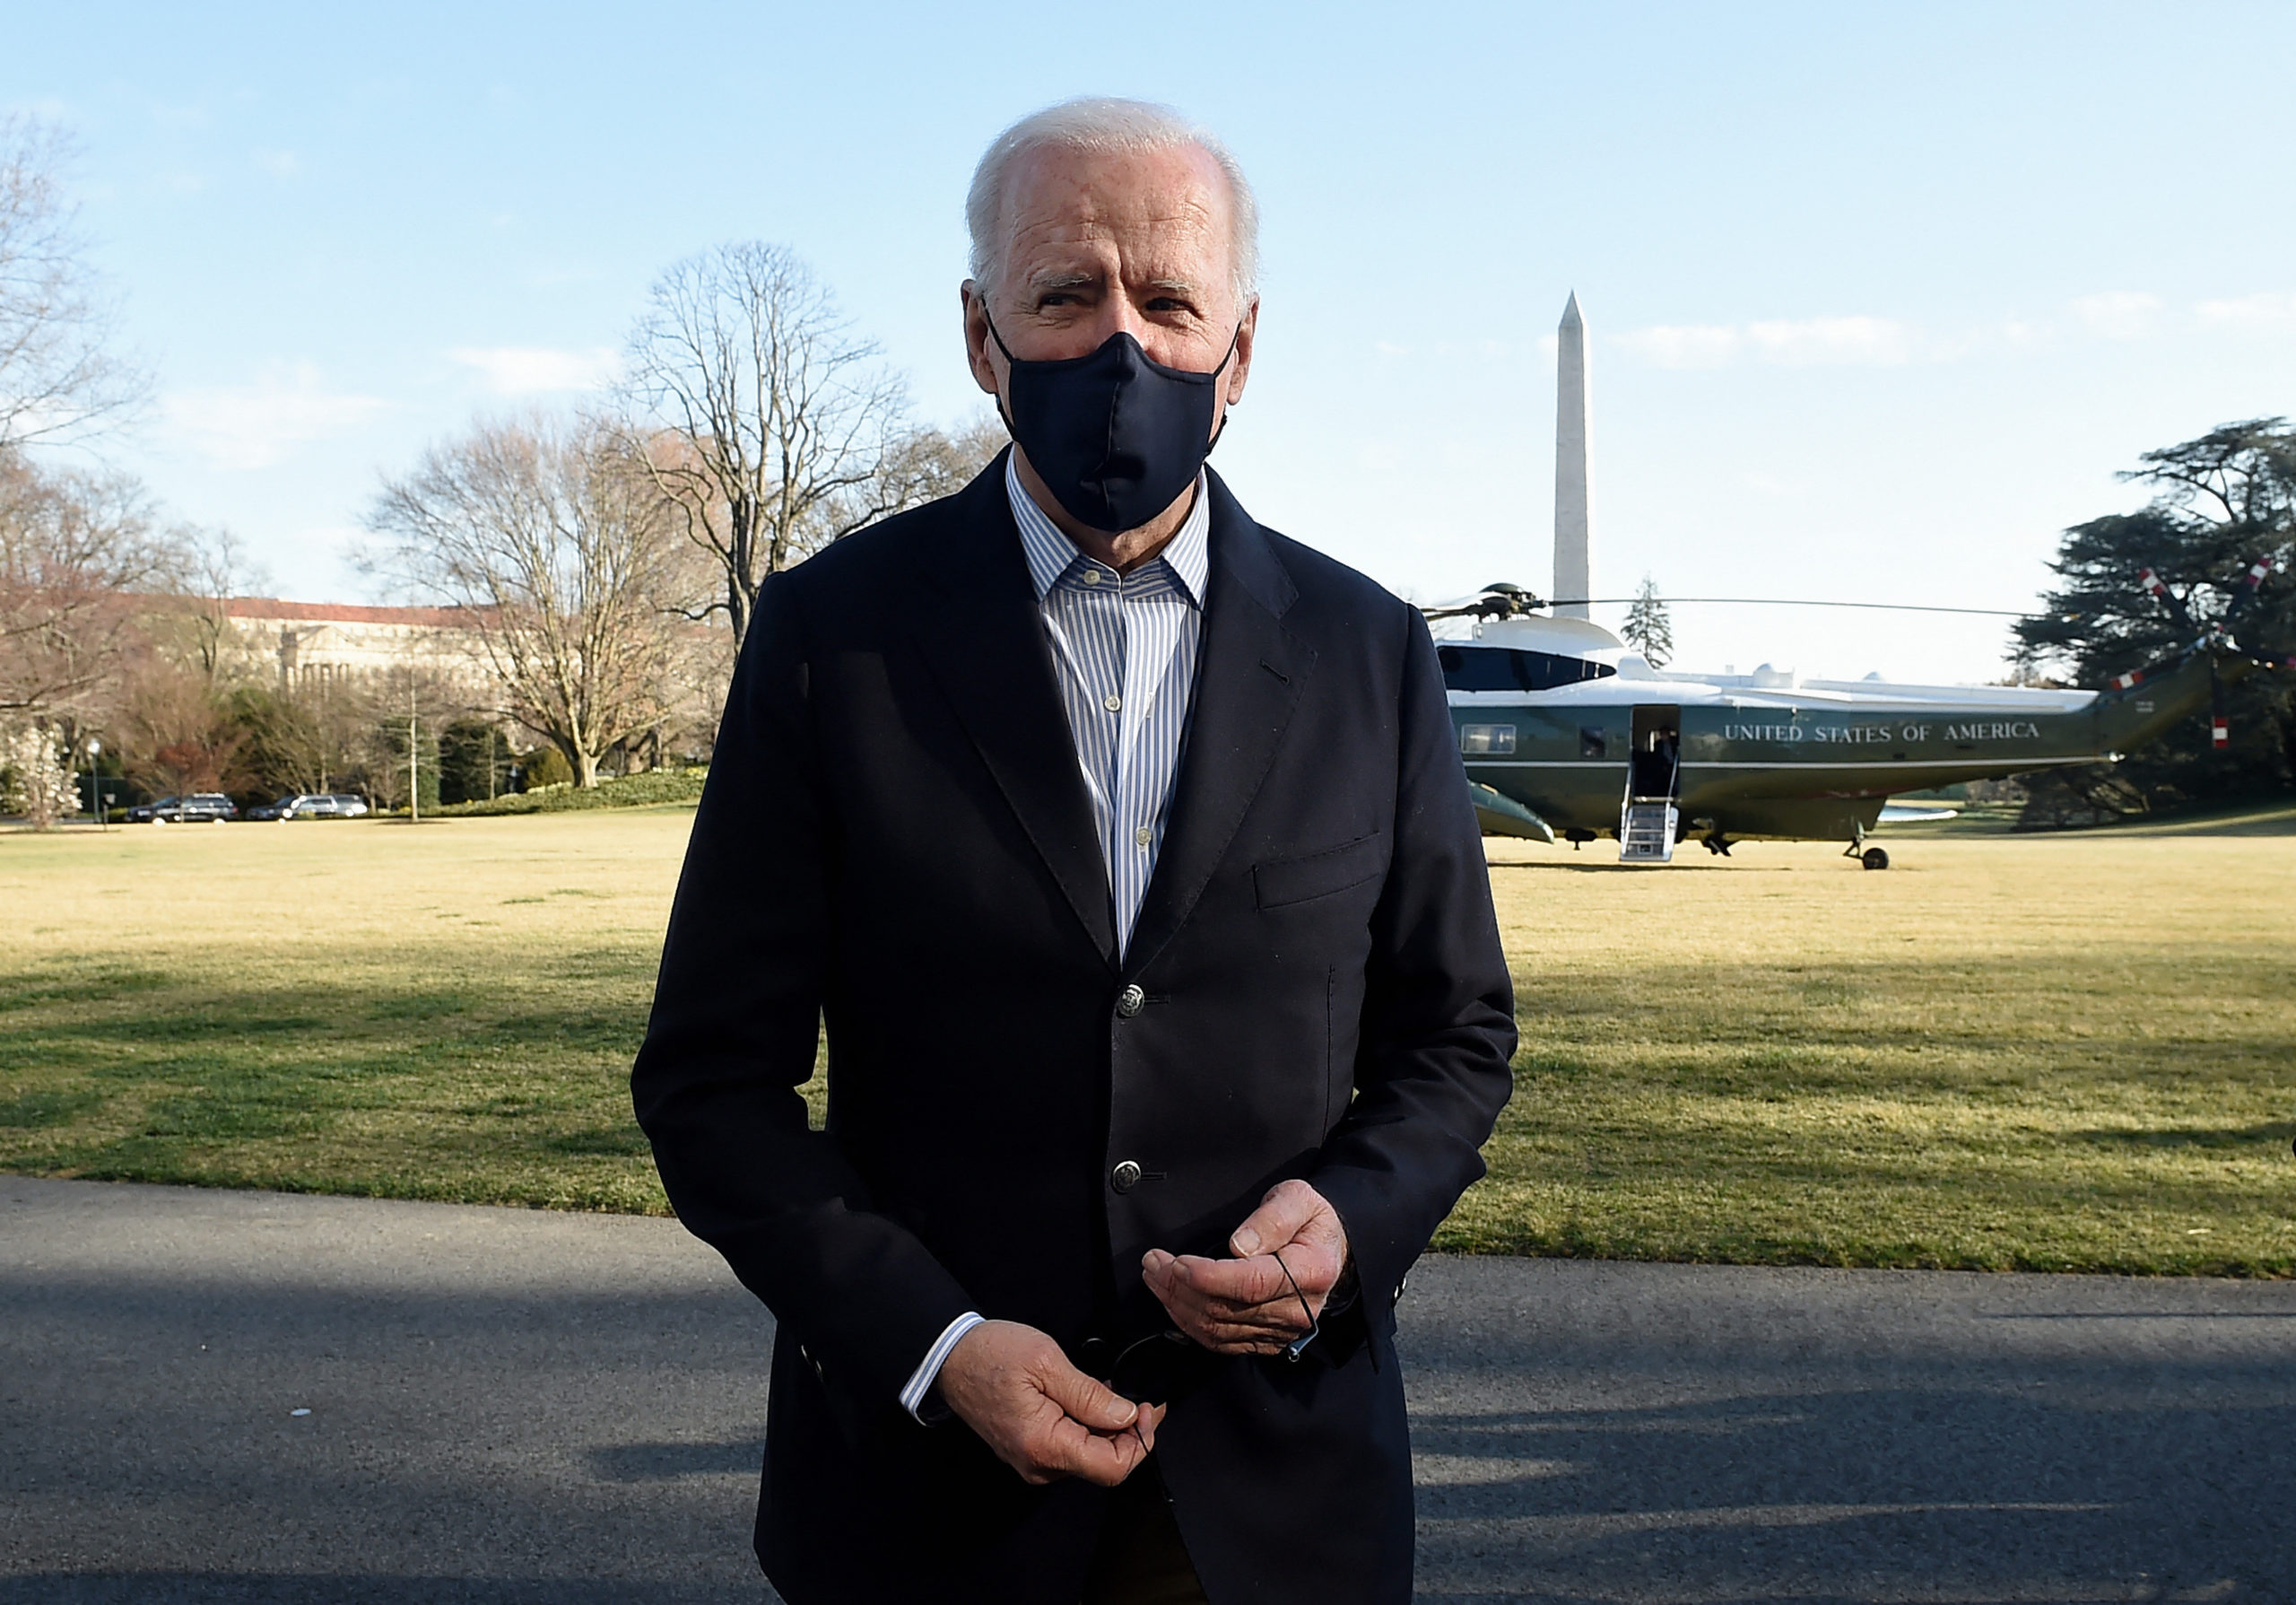 US President Joe Biden talks briefly with reporters upon his return from Camp David, Maryland to the White House in Washington, DC on March 21, 2021. (Photo by OLIVIER DOULIERY/AFP via Getty Images)